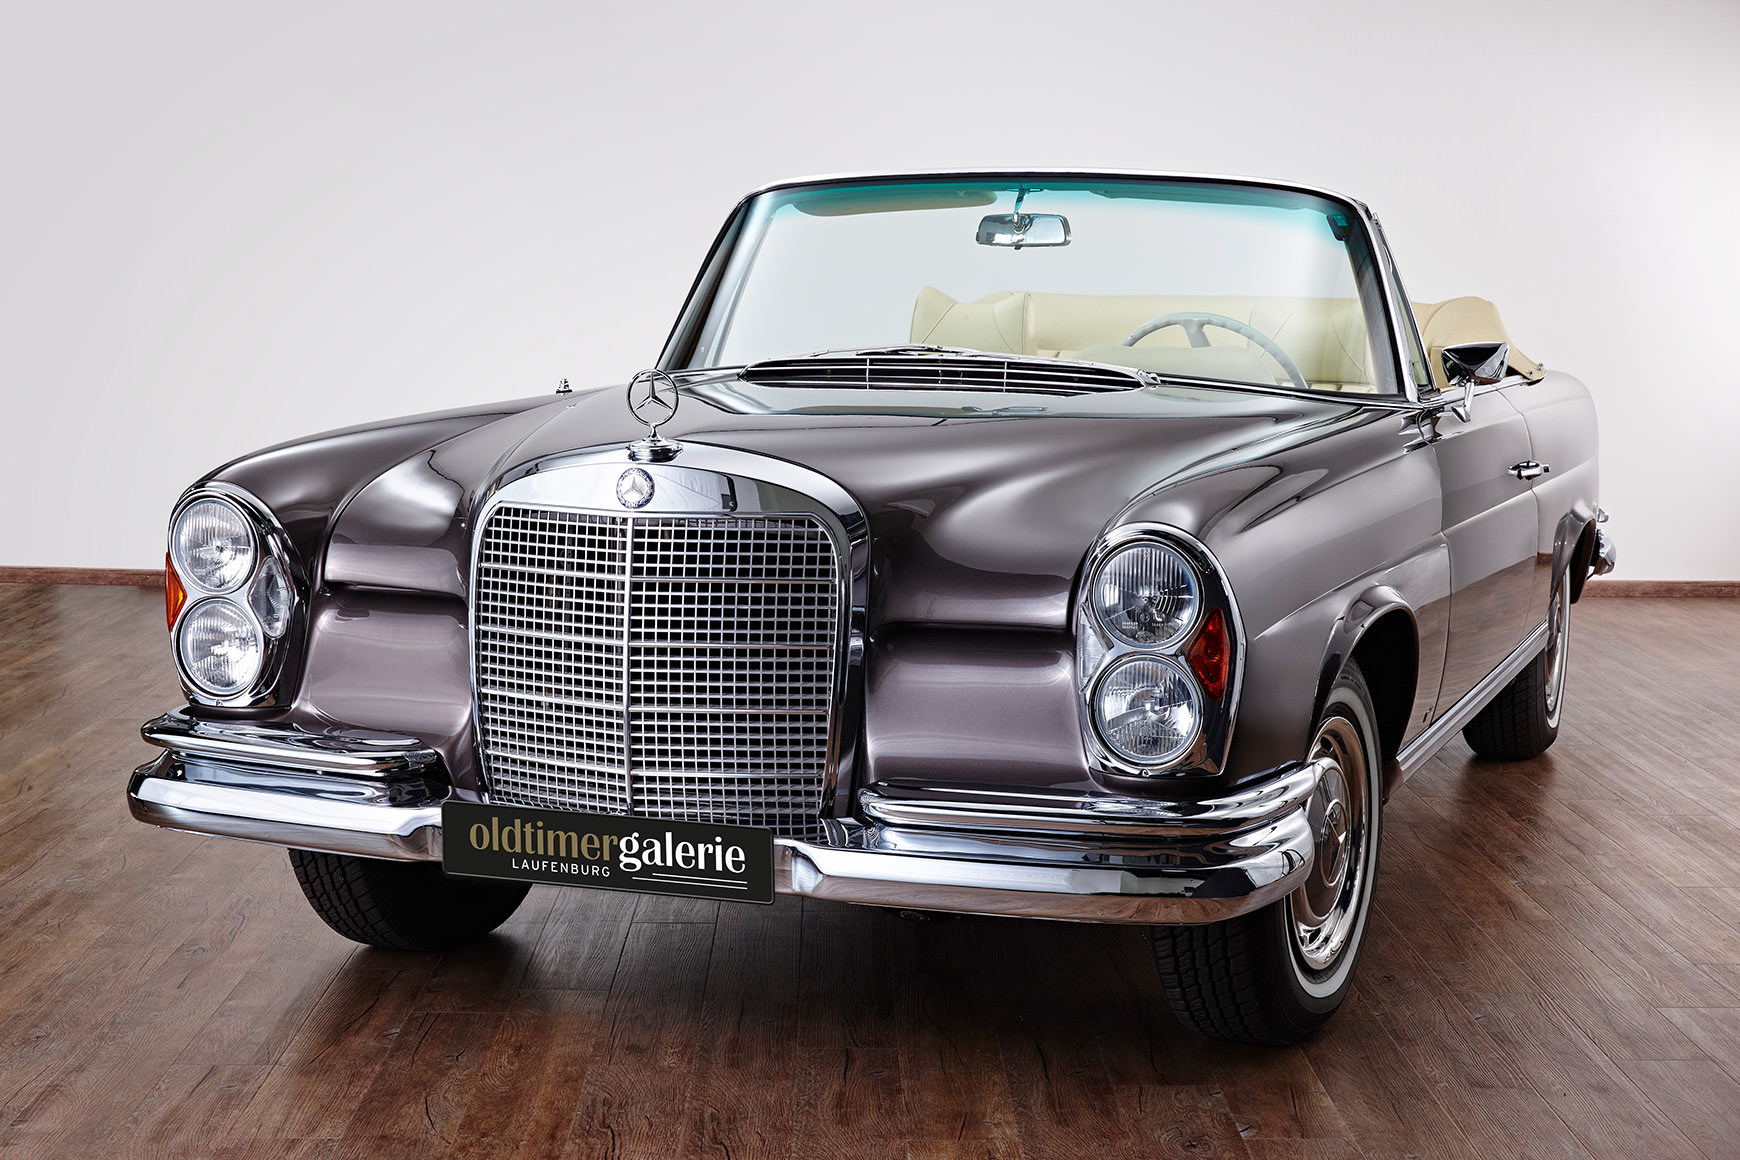 1968 mercedes 280 se cabriolet. Black Bedroom Furniture Sets. Home Design Ideas